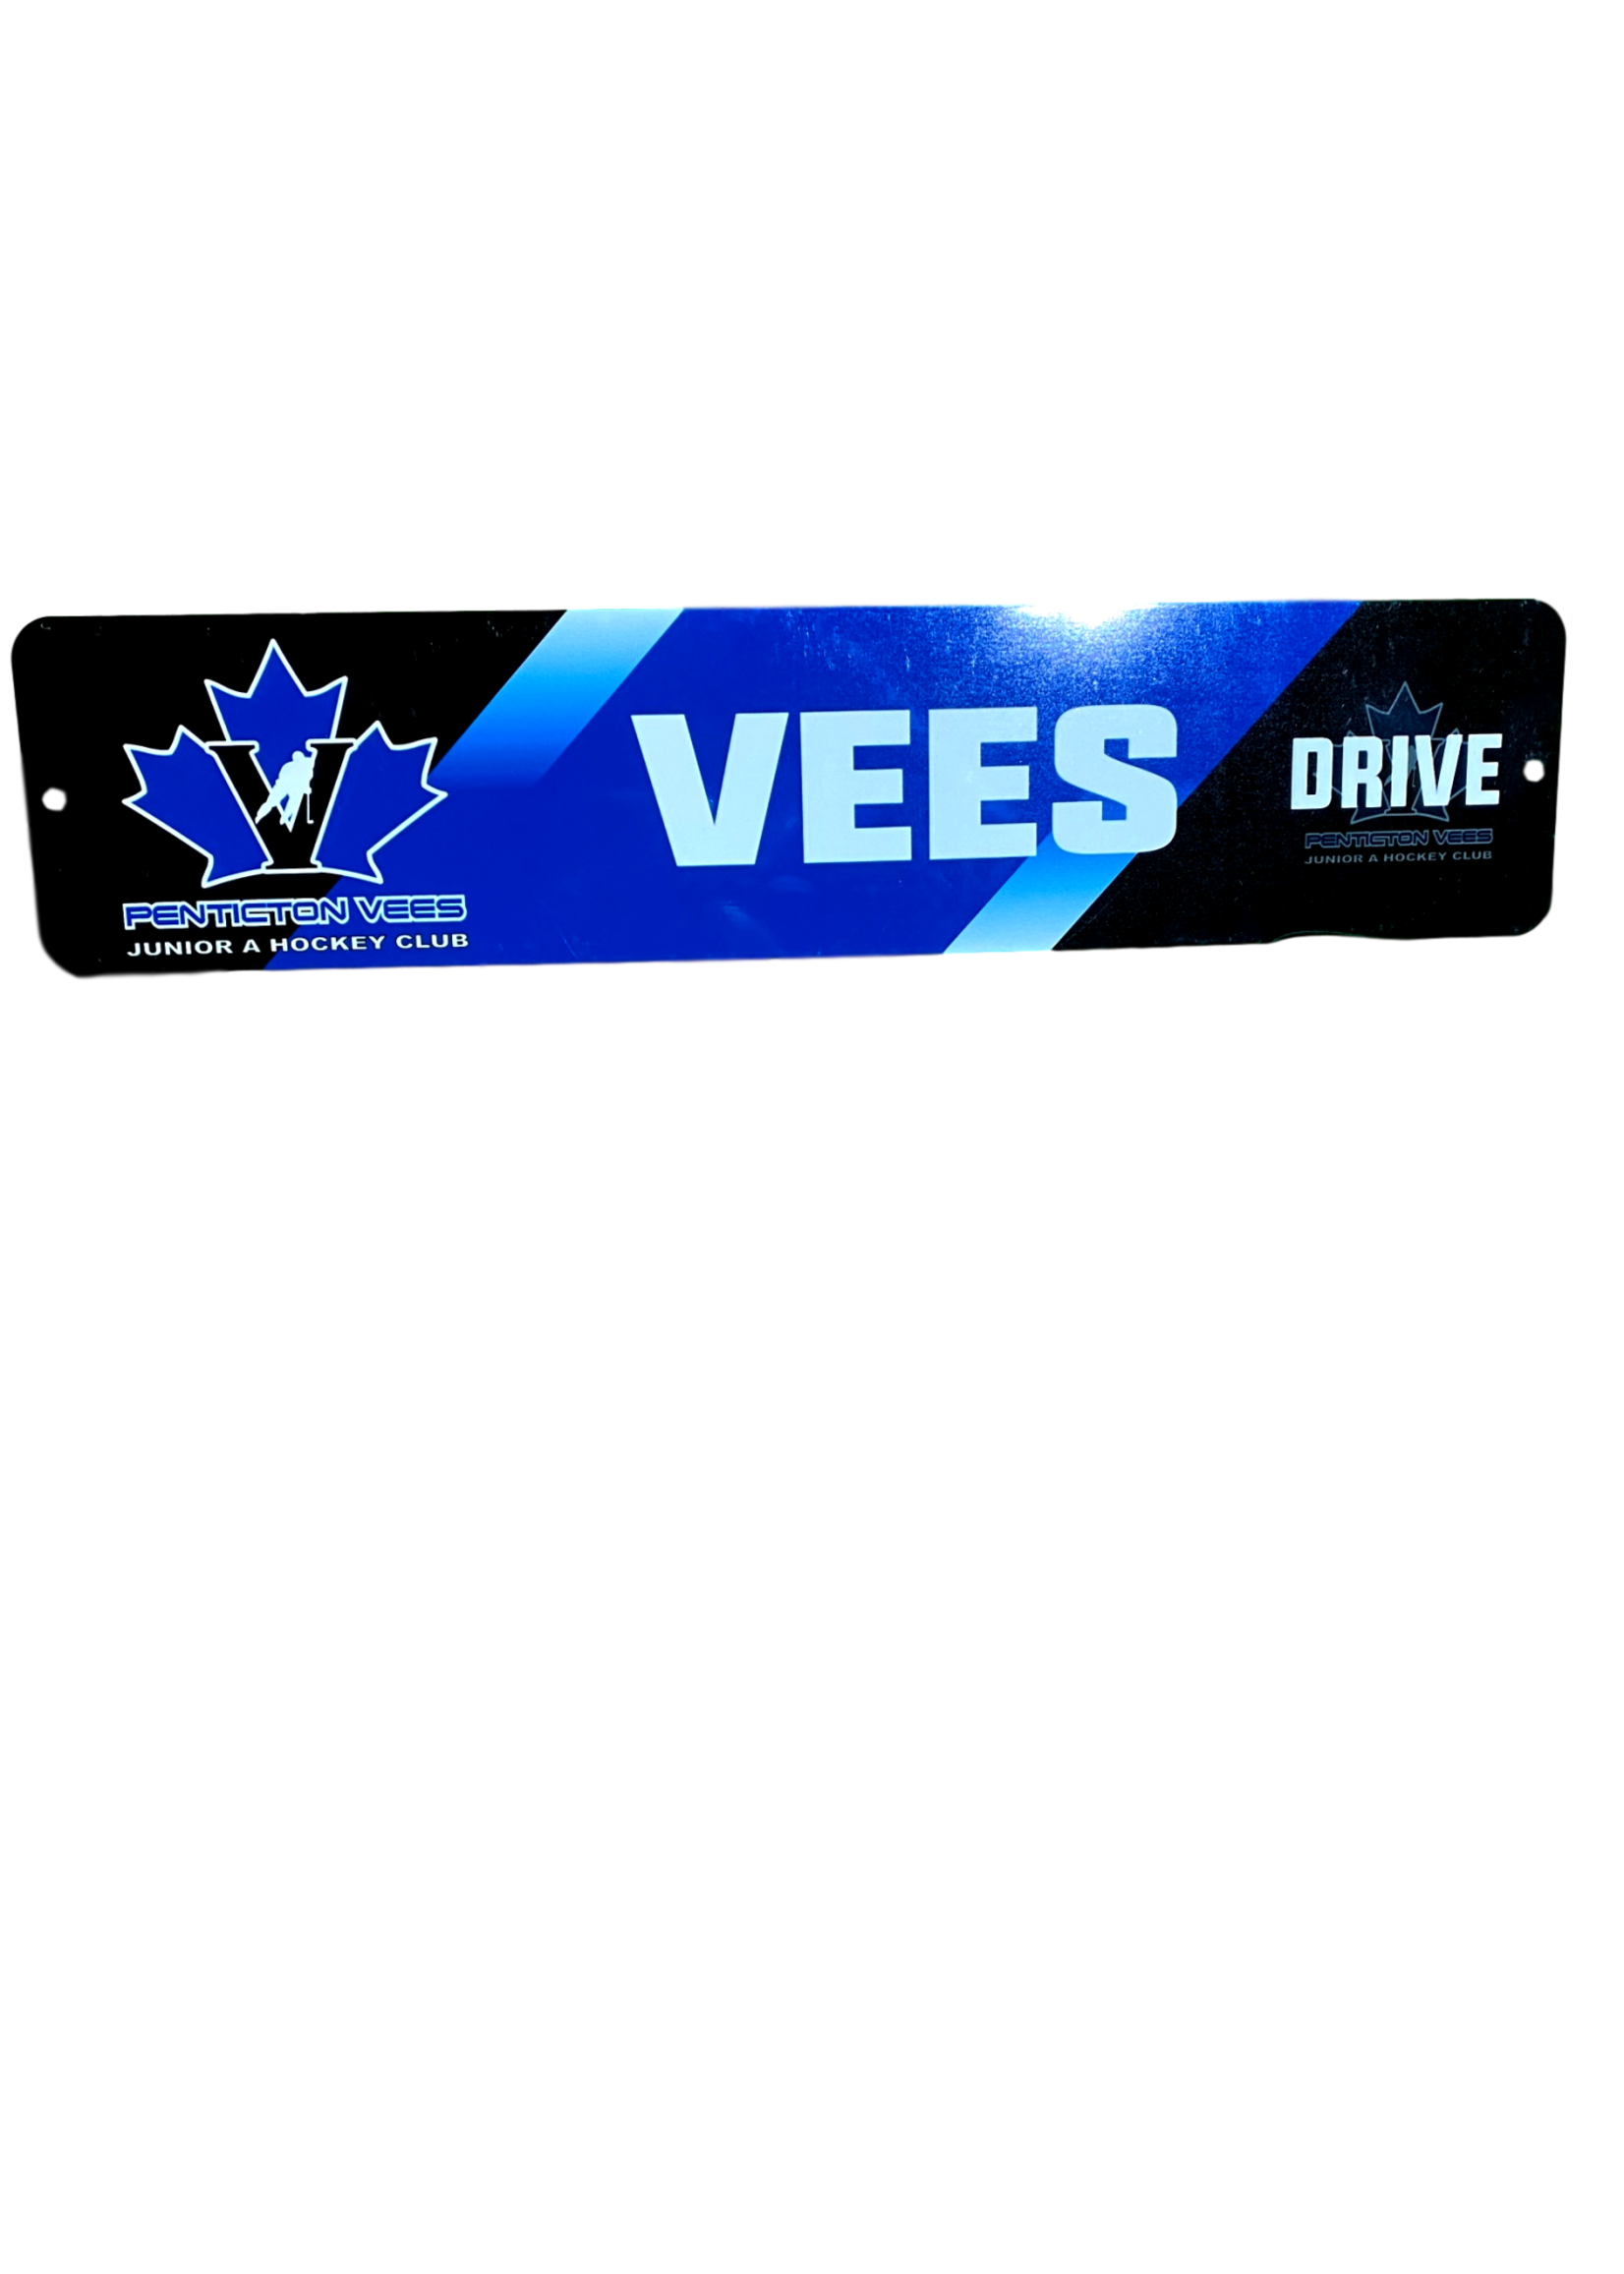 Vees Drive Sign